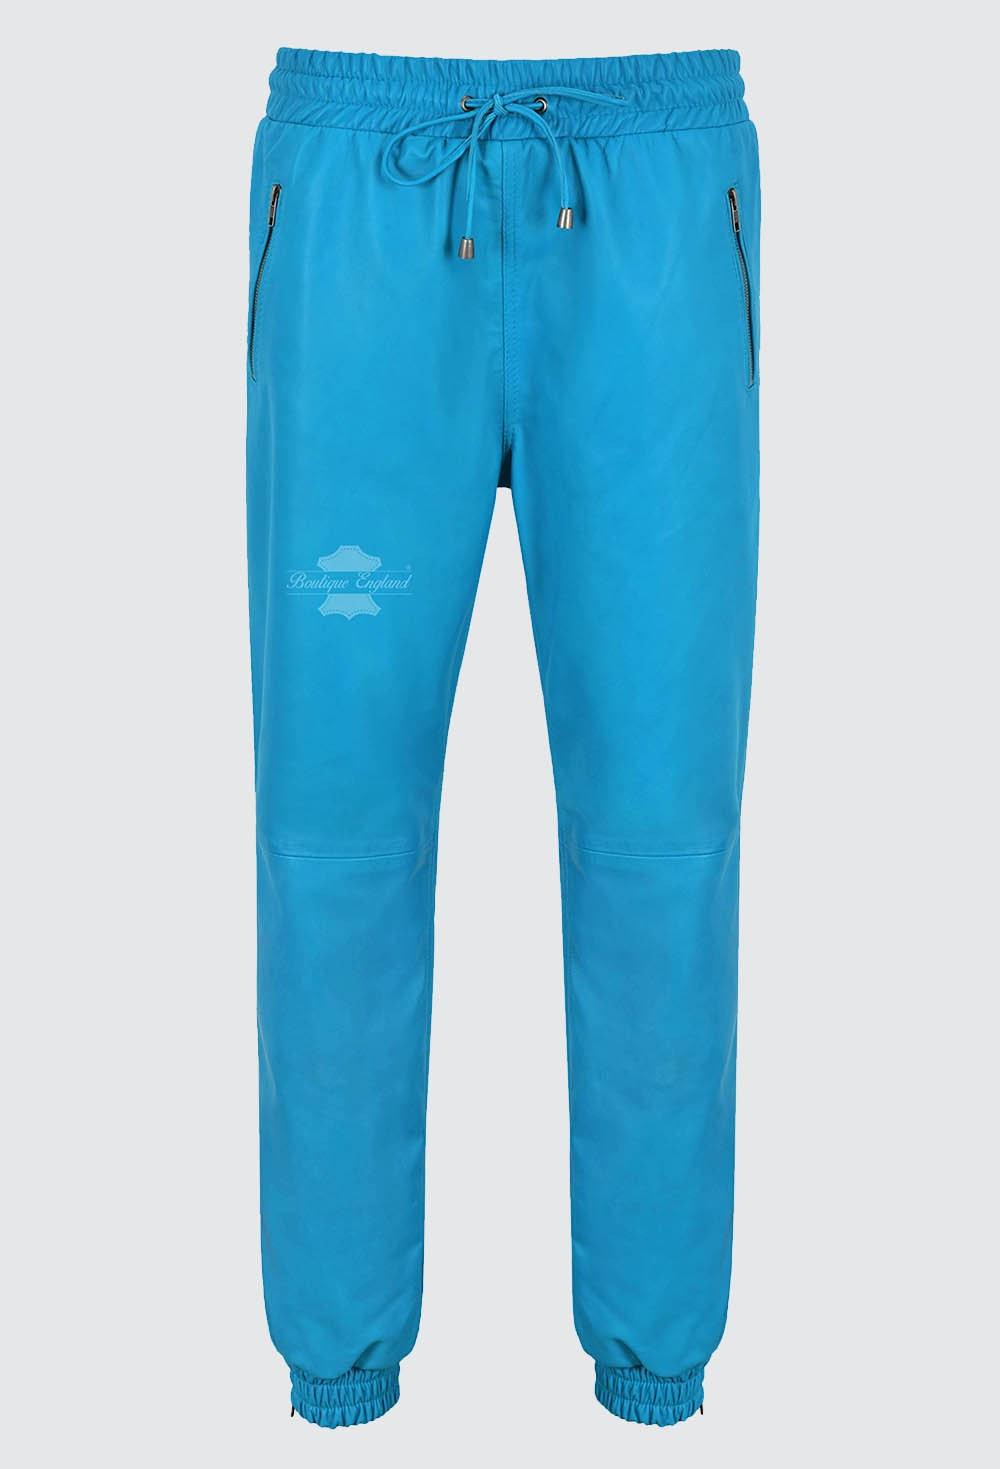 Men's Real Leather Trouser Sweat Track Electric Blue Pant Zip Jogging Bottom 3040